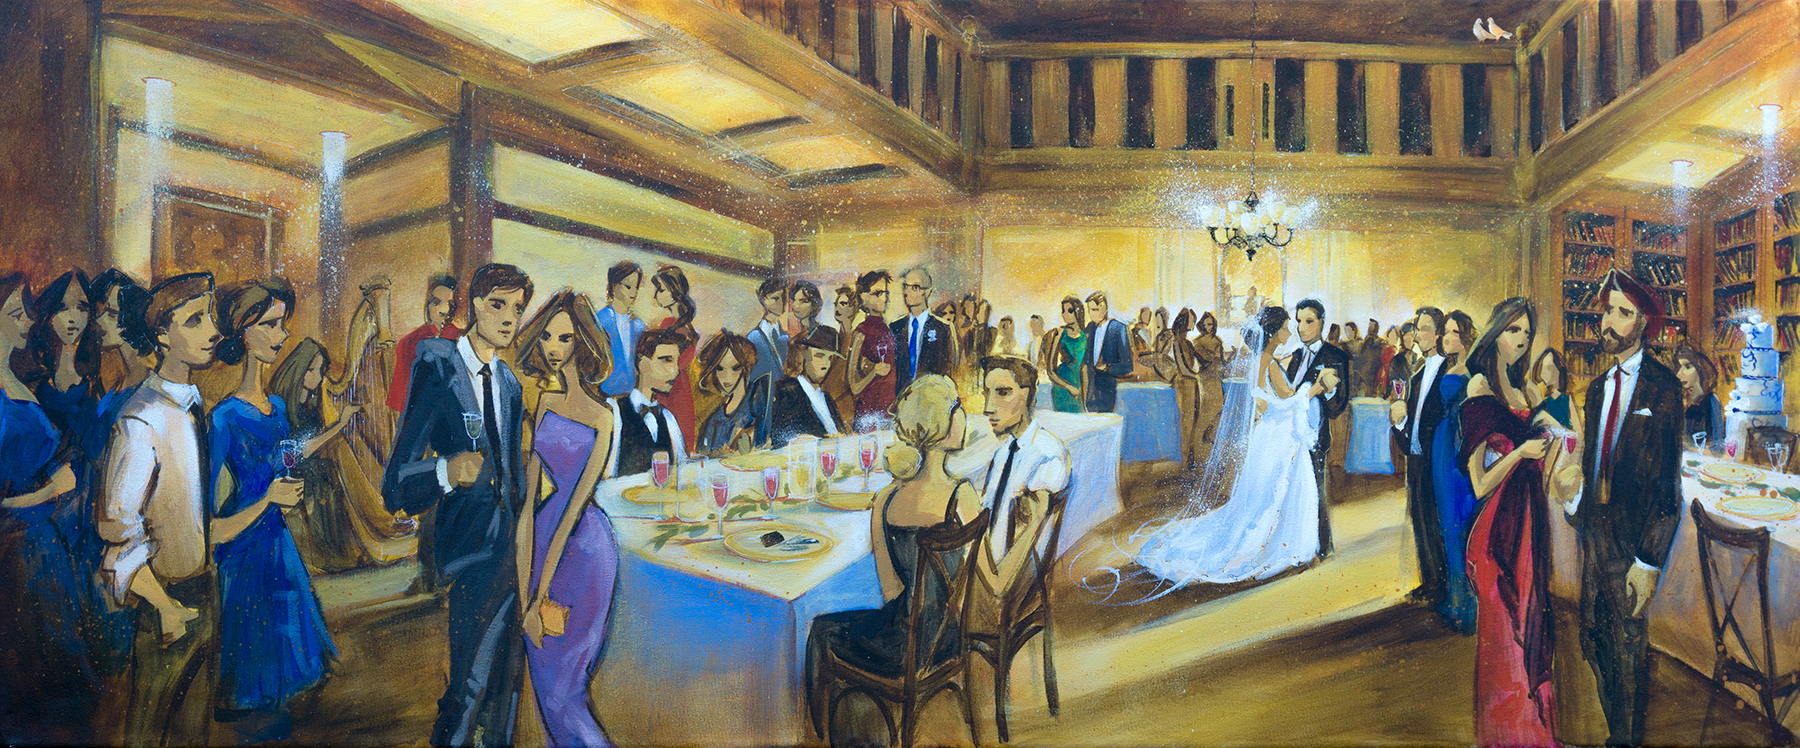 live wedding painting - impressions live art.jpg